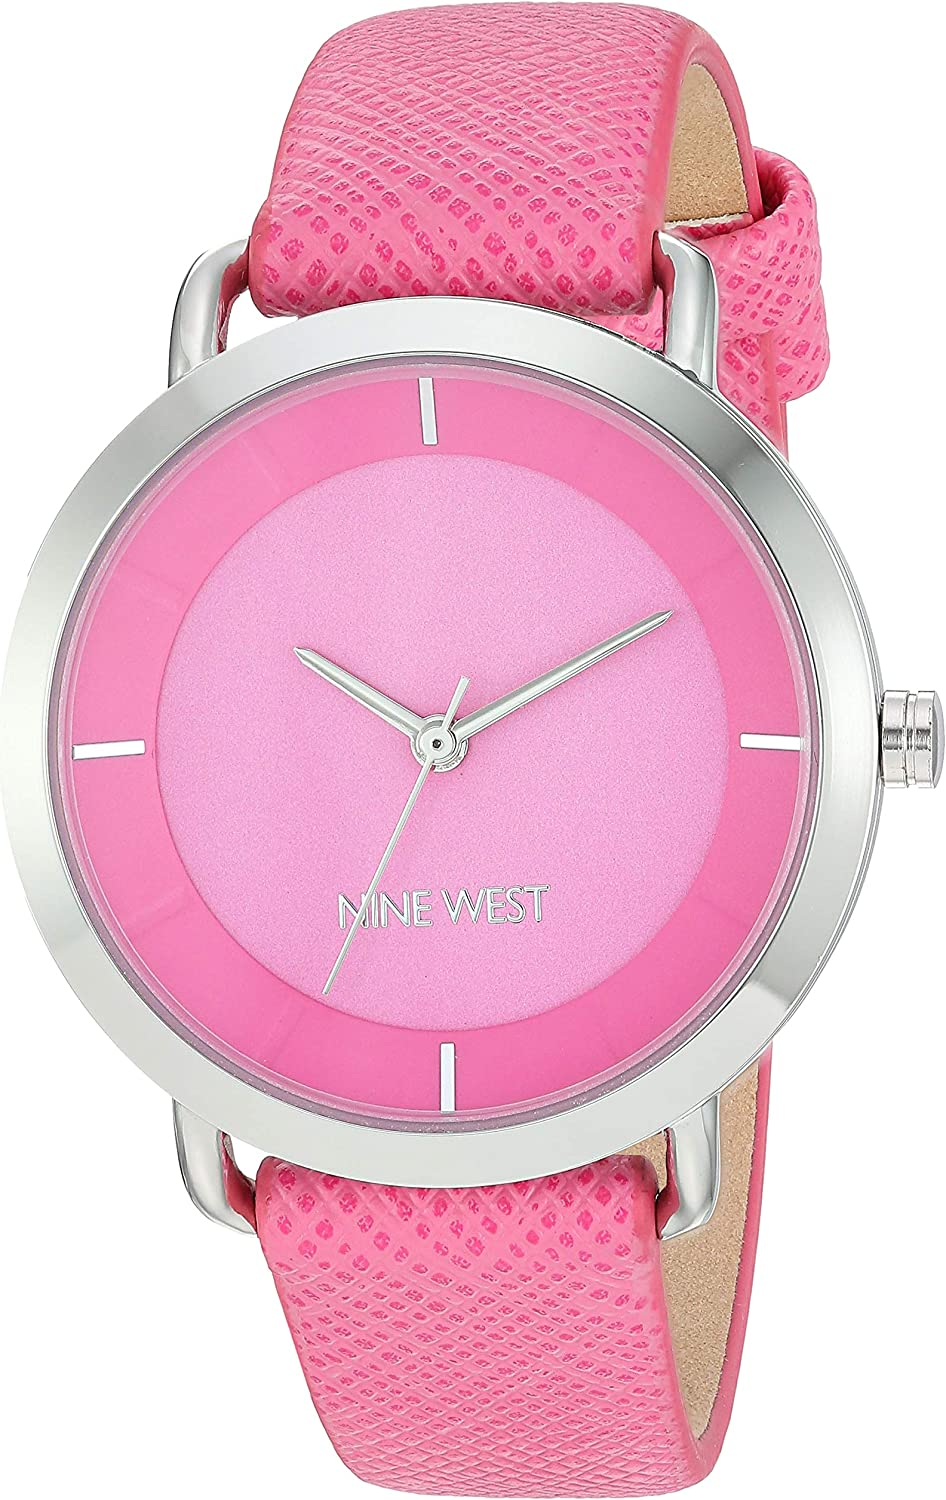 Nine West Women's Textured Strap Watch